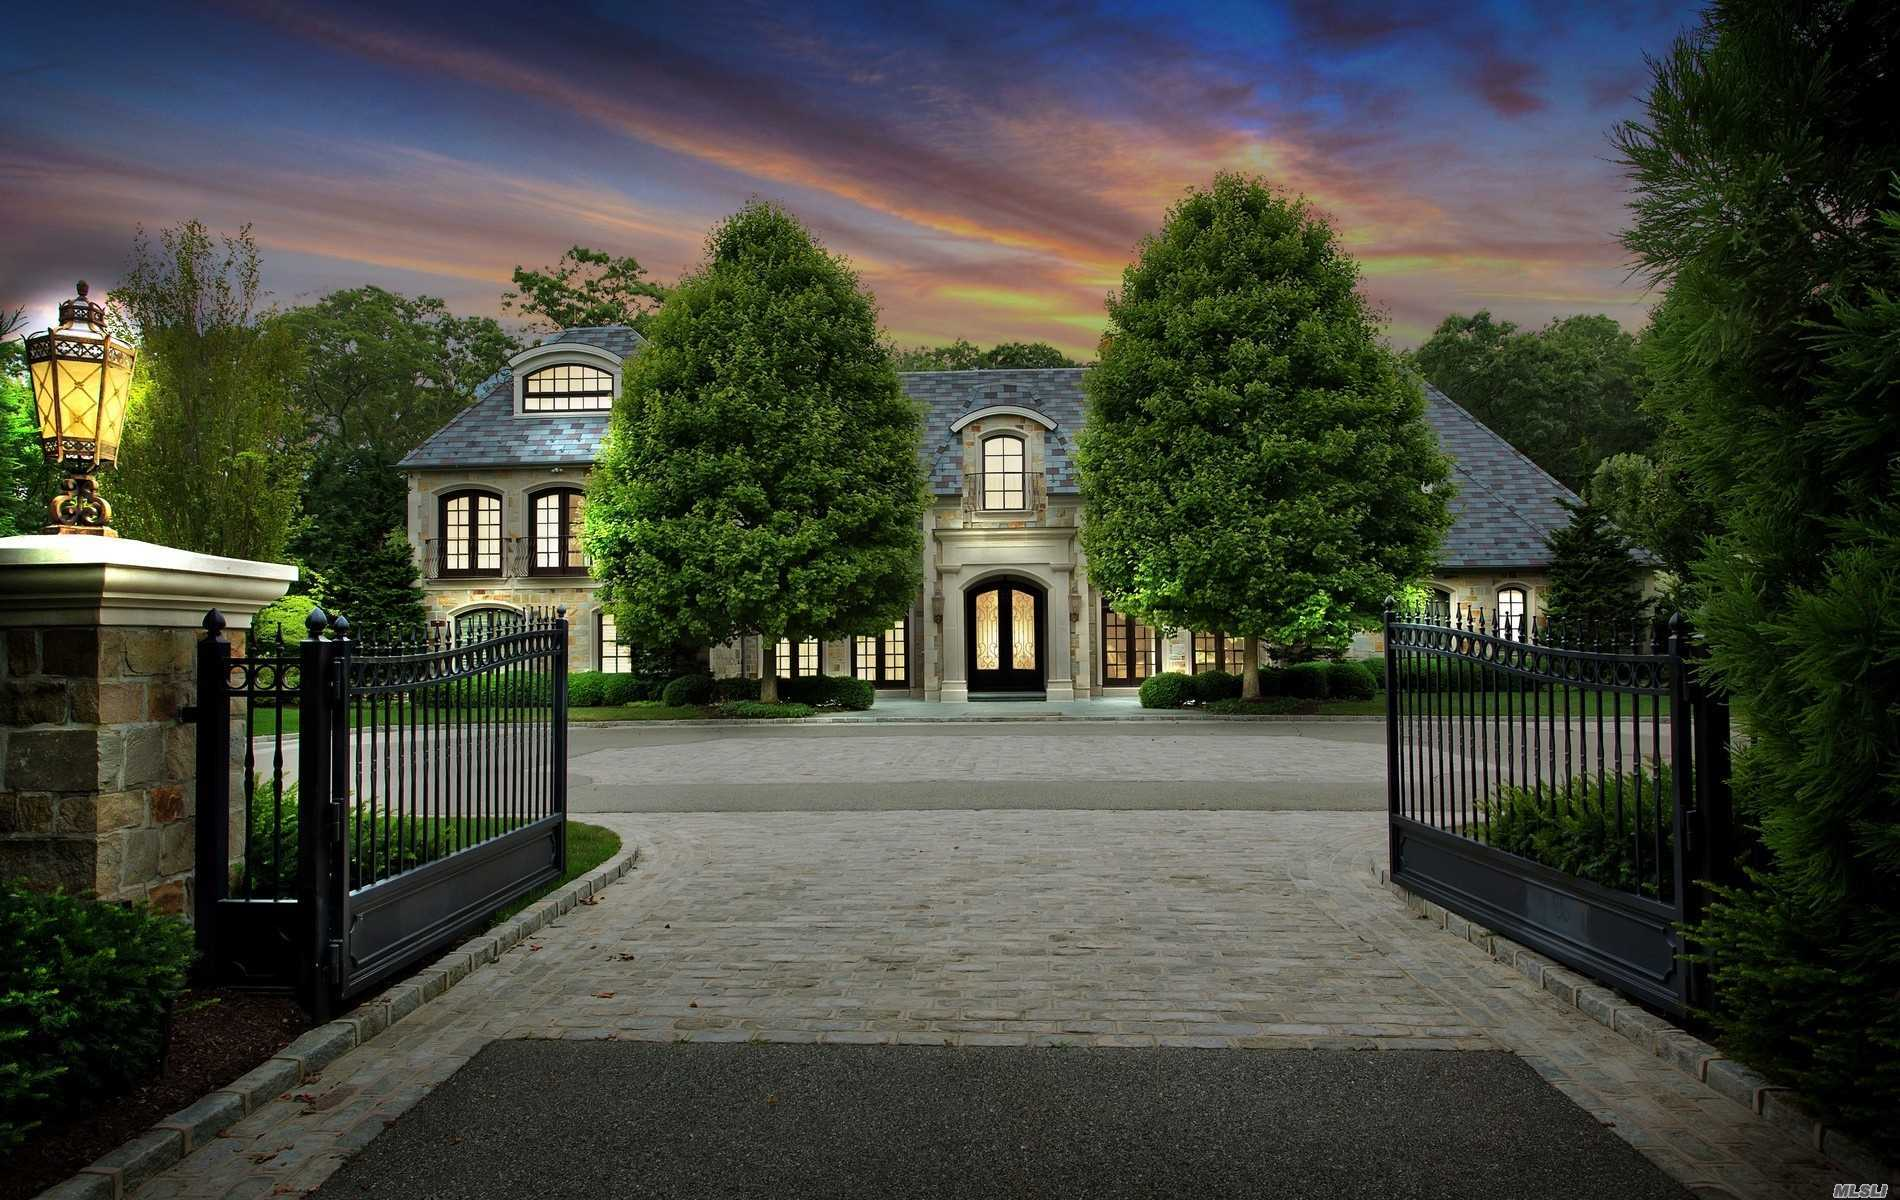 Rendezvous; Outstanding 7500sq. ft. Granite Gated French Normandy sited on 2+ Glorious Acres. A symphony of Masterful Craftsmanship & Design. Sumptuous Main Floor Mstr. A Sublime Retreat with Dual Dressing Rooms & 2 Onyx Spa Baths. 7 Car garage heated & AC perfect for the Car Enthusiast! 22x50 Salt Water Pool, Pool House, Full house Generator, Lower Level 5500sq. ft. A Masterpiece Collection Listing. JERICHO SCHOOL DISTRICT #15.